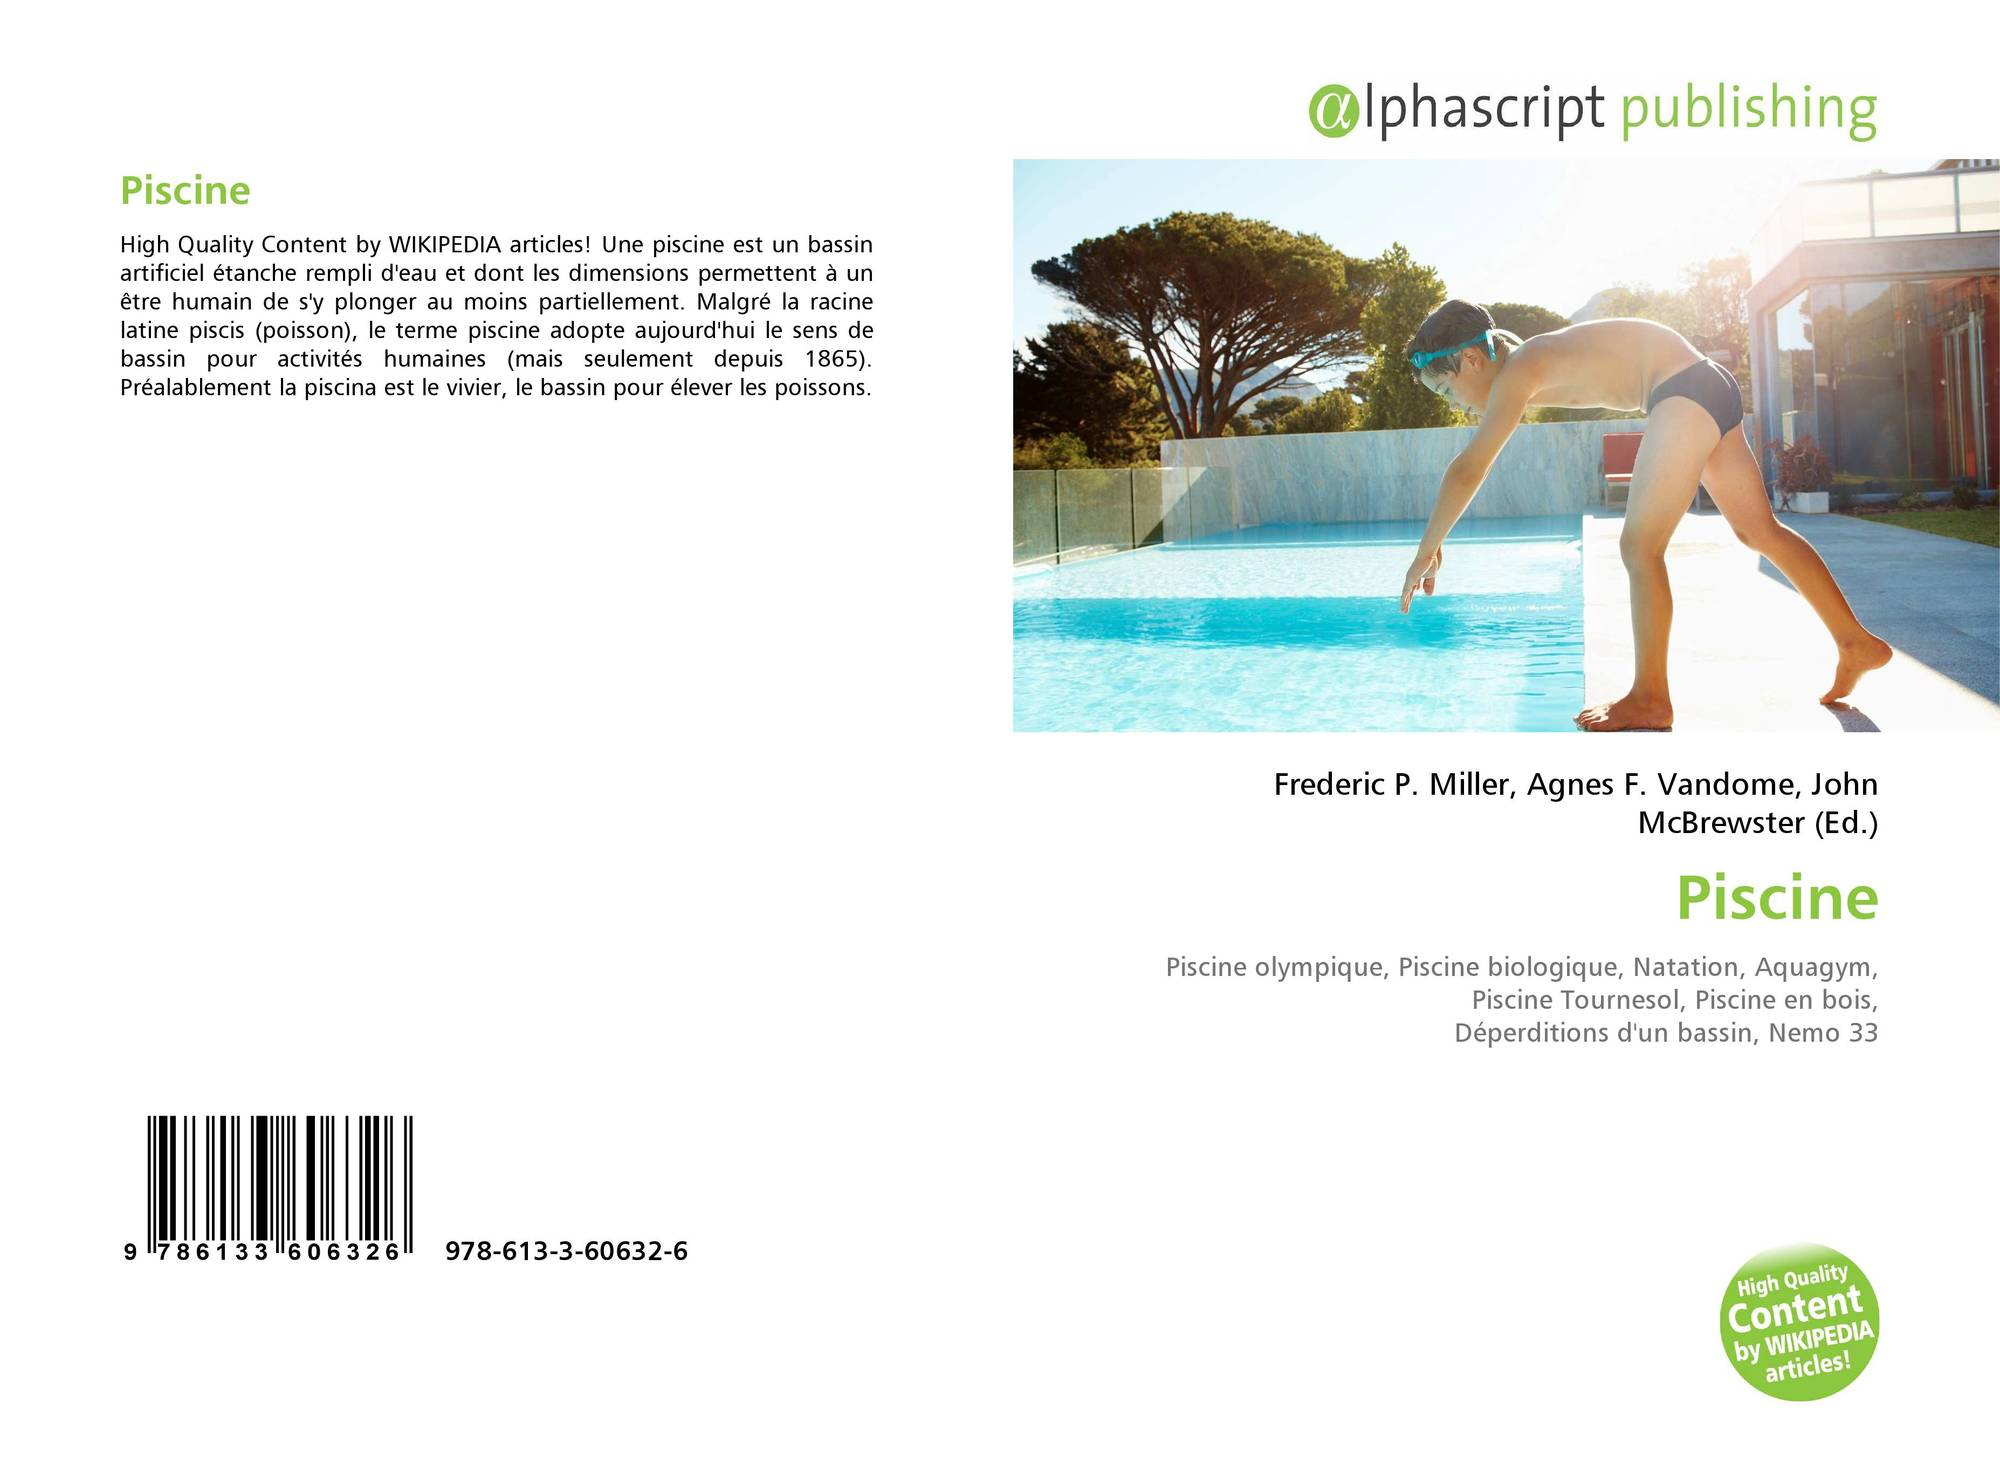 Piscine, 978-613-3-60632-6, 6133606320 ,9786133606326 avec Dimension Piscine Olympique